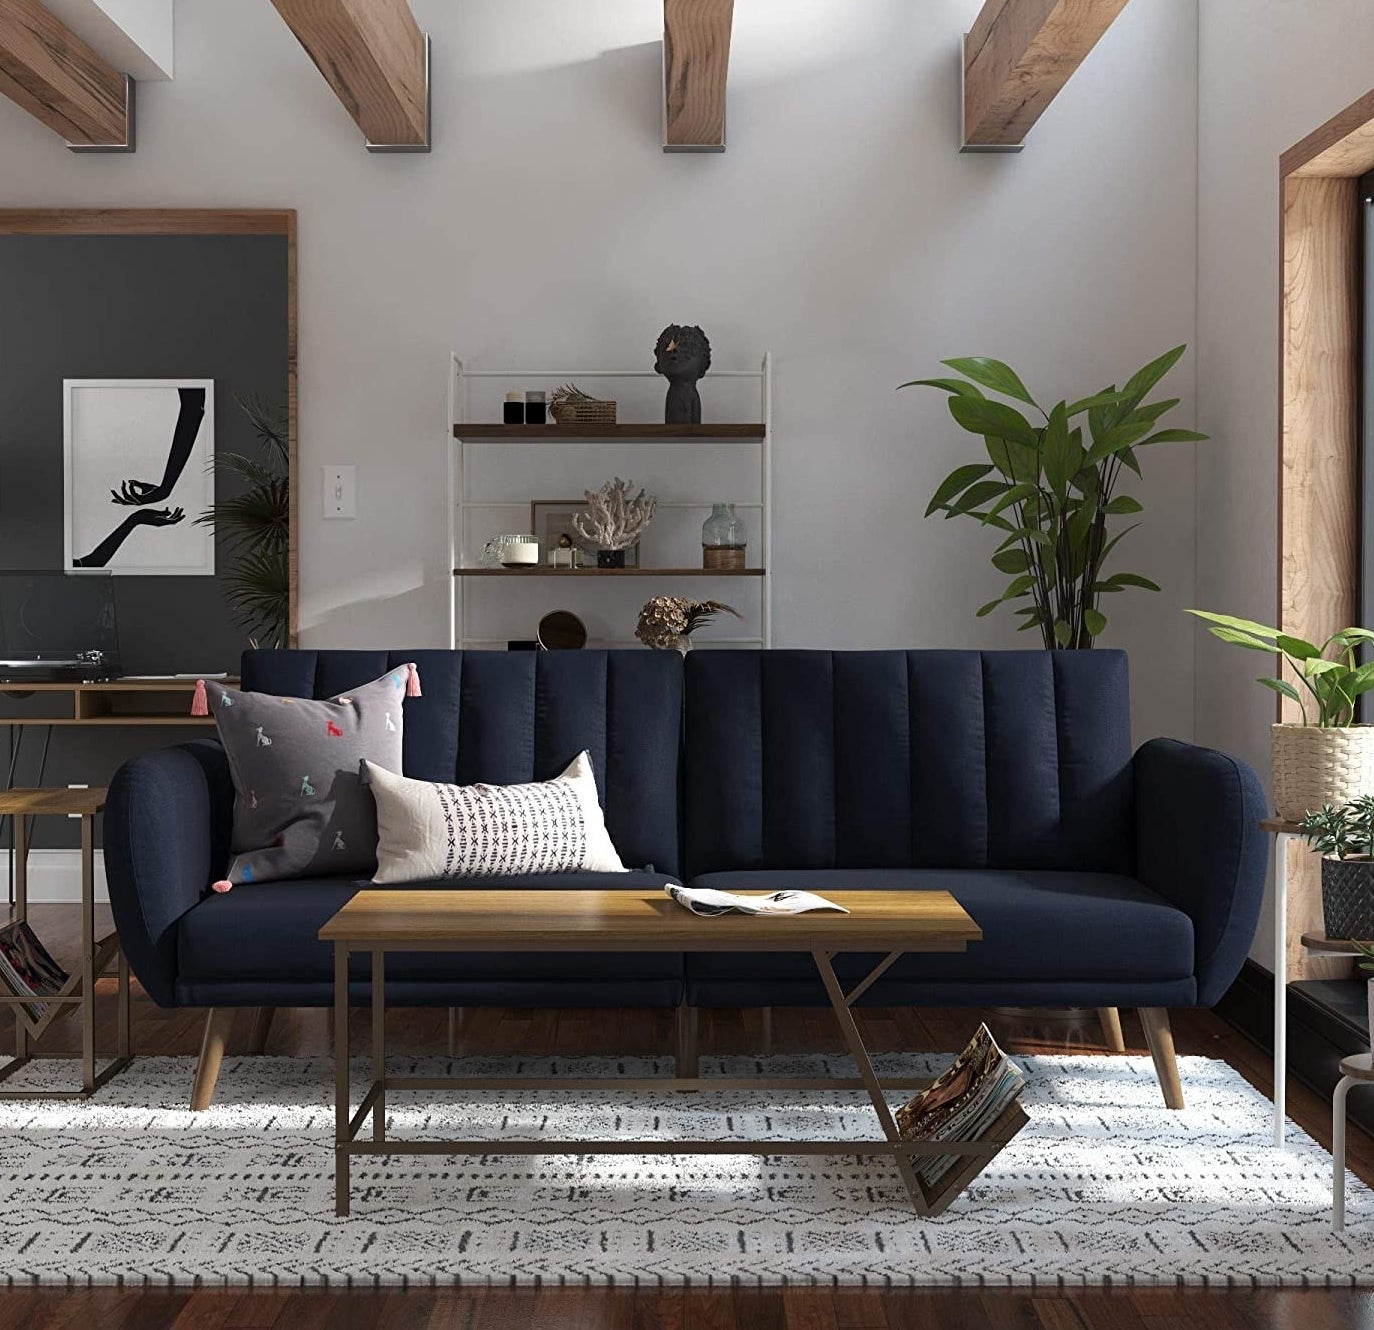 A navy blue futon with a tufted cushion back with slanted wooden legs in a living room.